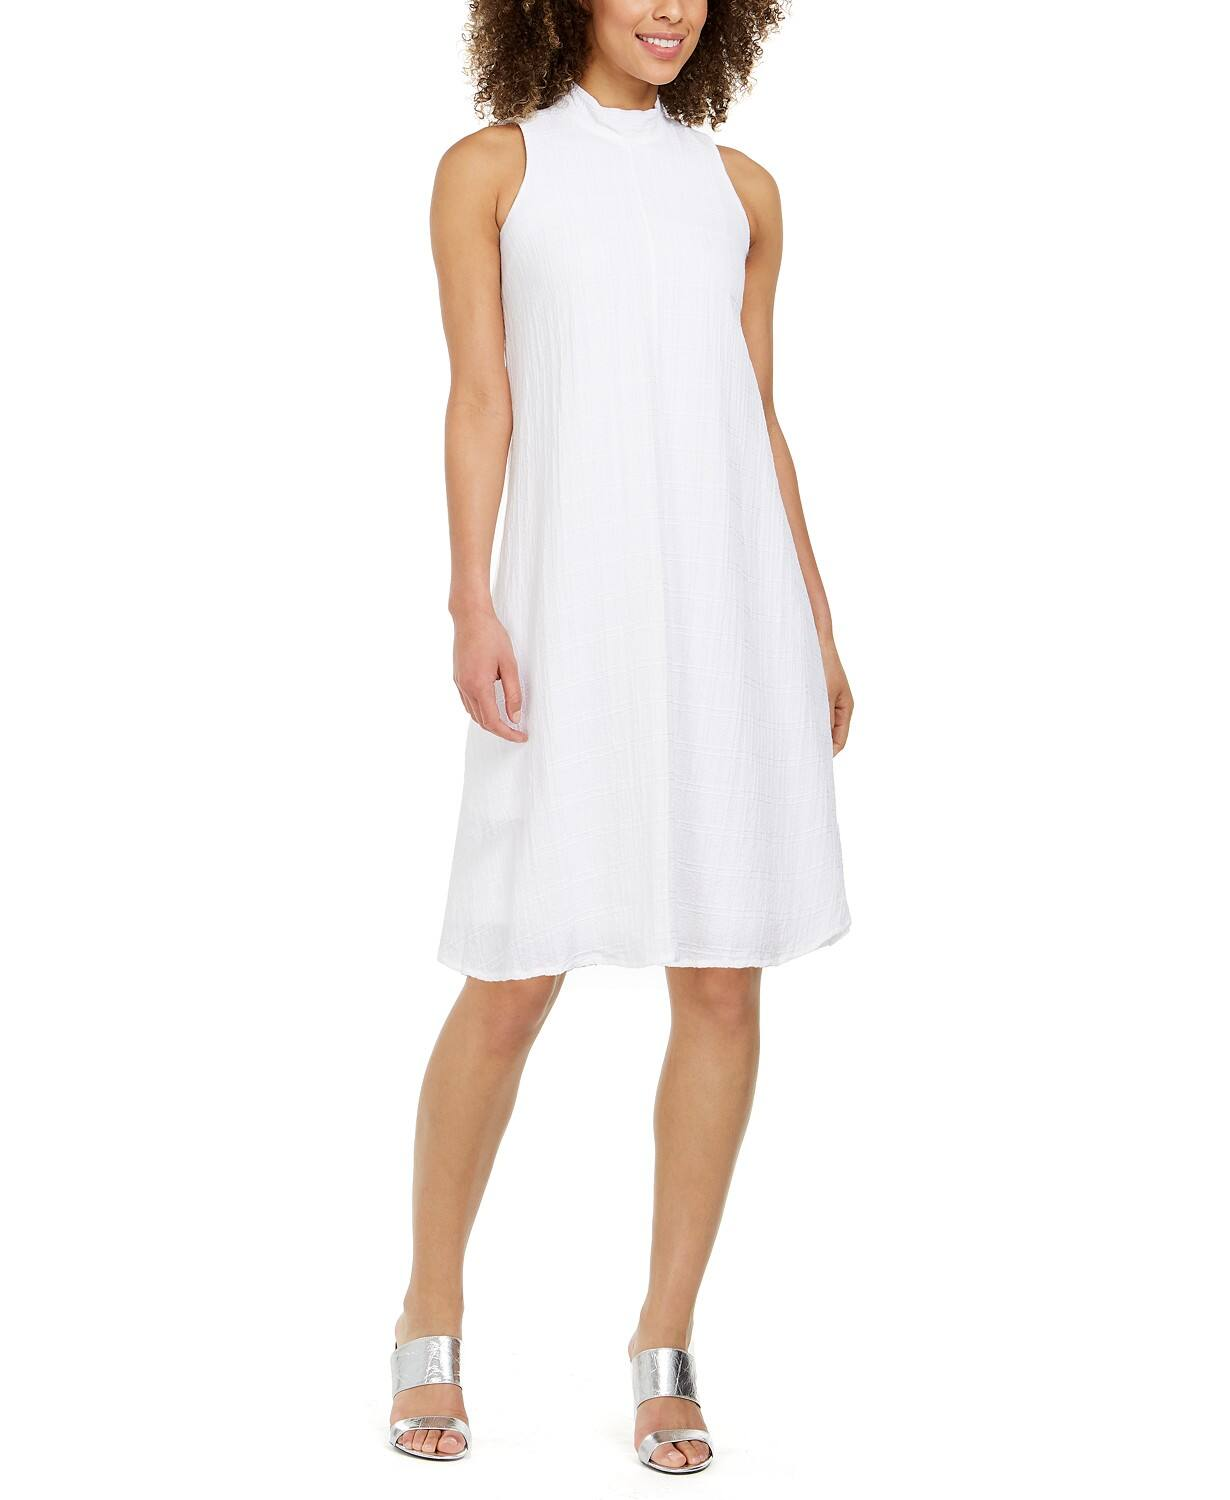 Calvin Klein Women's Dresses (Various Styles & Colors) $20 & More at Macy's w/ Free S&H on $25+